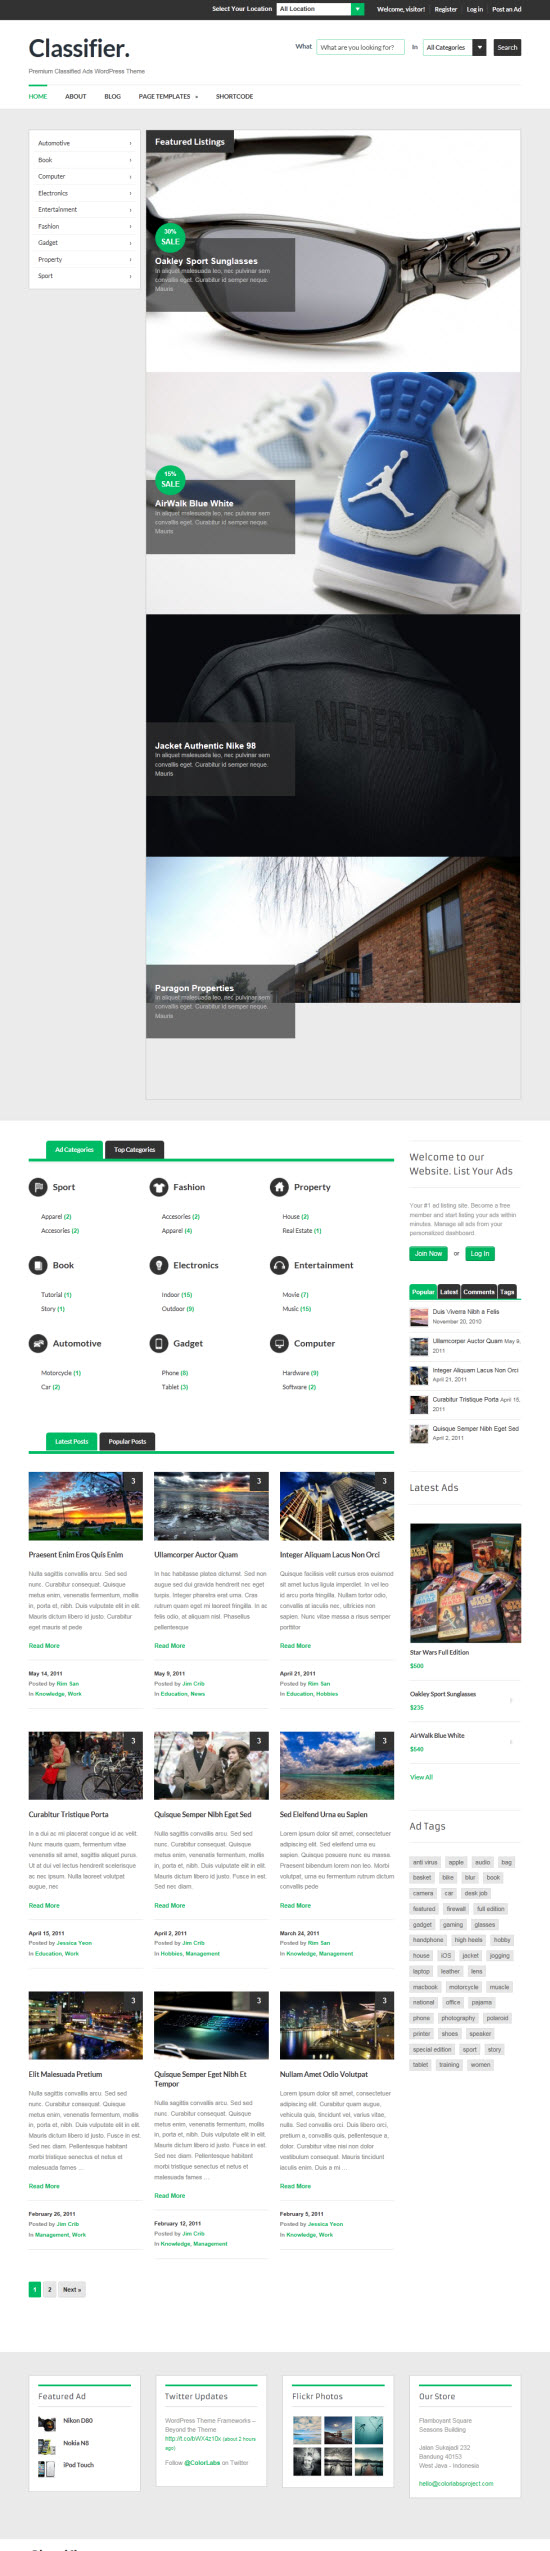 Classifier WordPress Theme